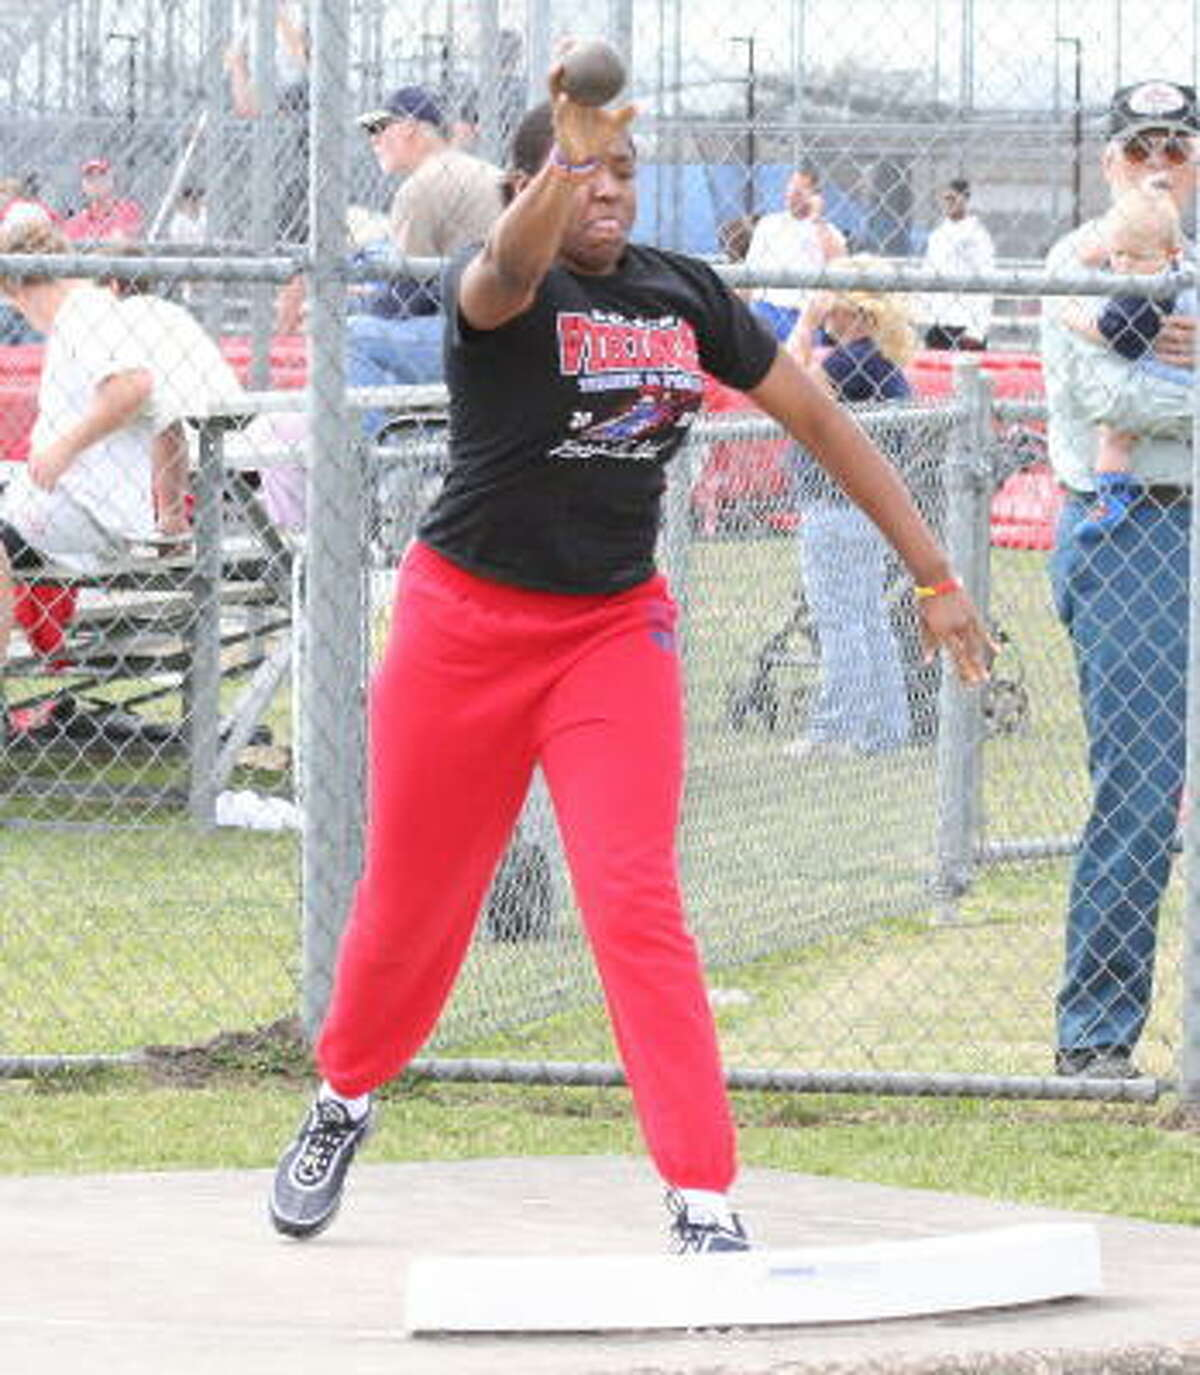 Kelsey Bone of Dulles threw into first place.